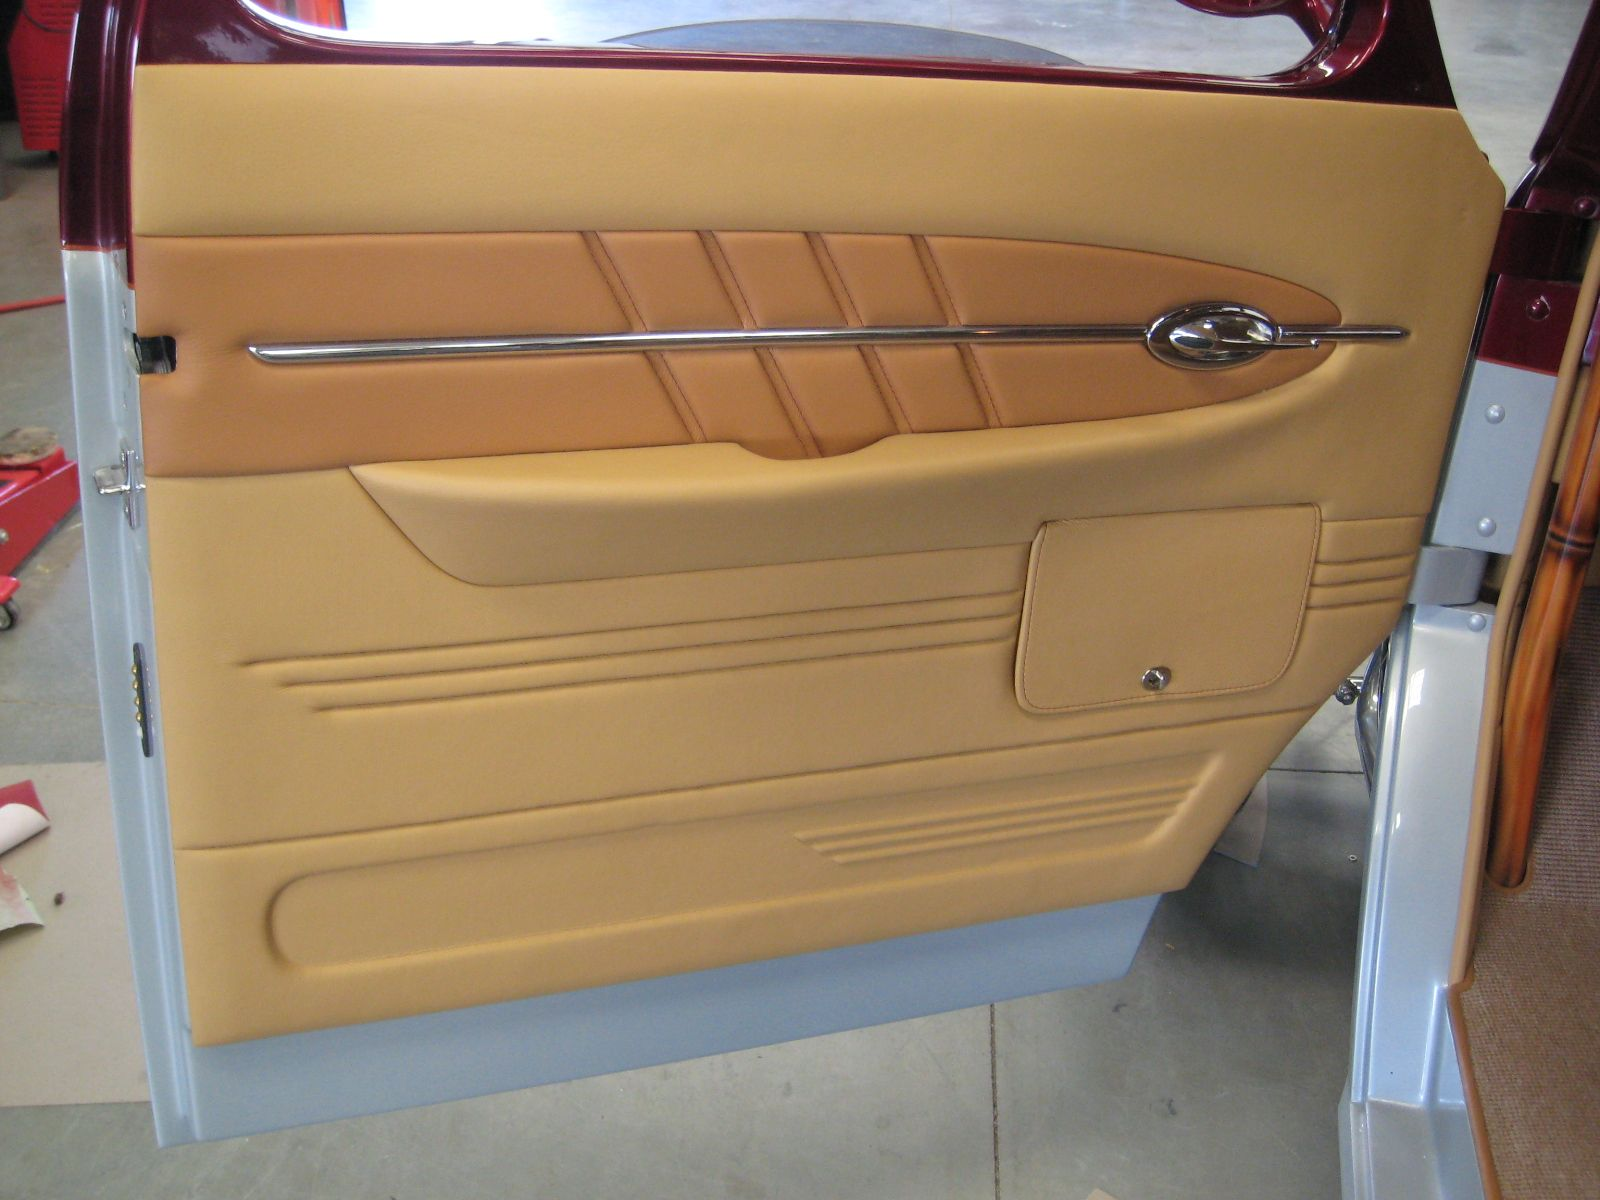 Custom car interior queens ny - Hot Rod Custom Upholstery Yahoo Search Results Yahoo Image Search Results